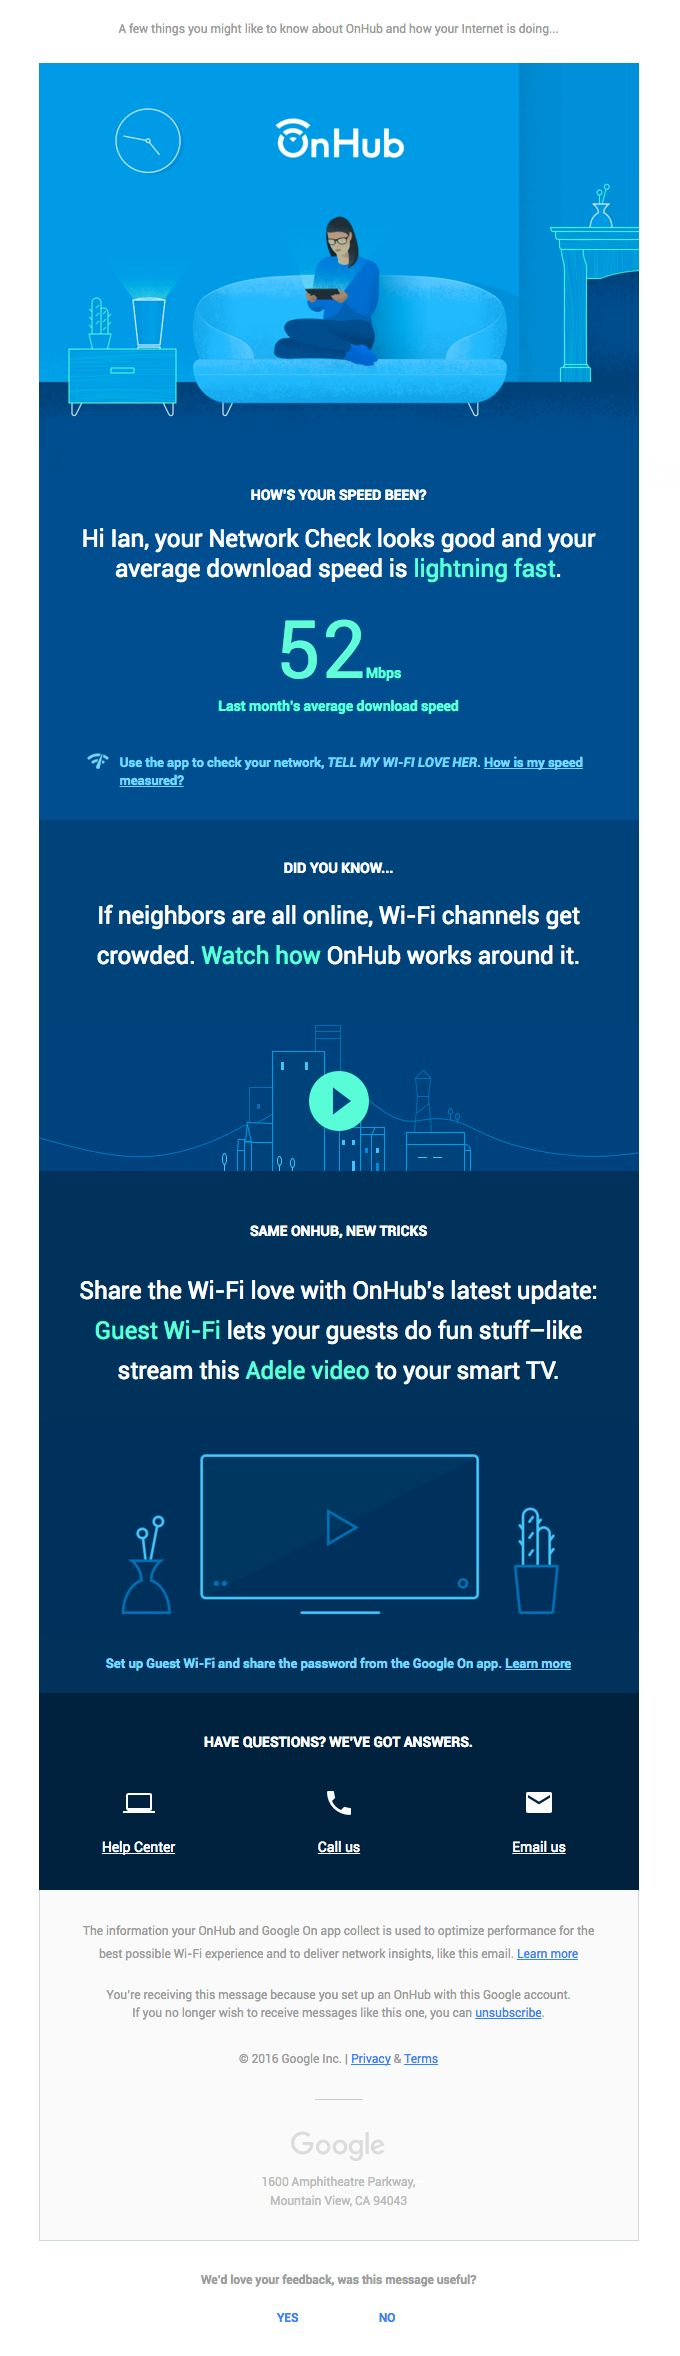 Hello from OnHub! Want to see how fast your Internet speed is? - Really Good Emails